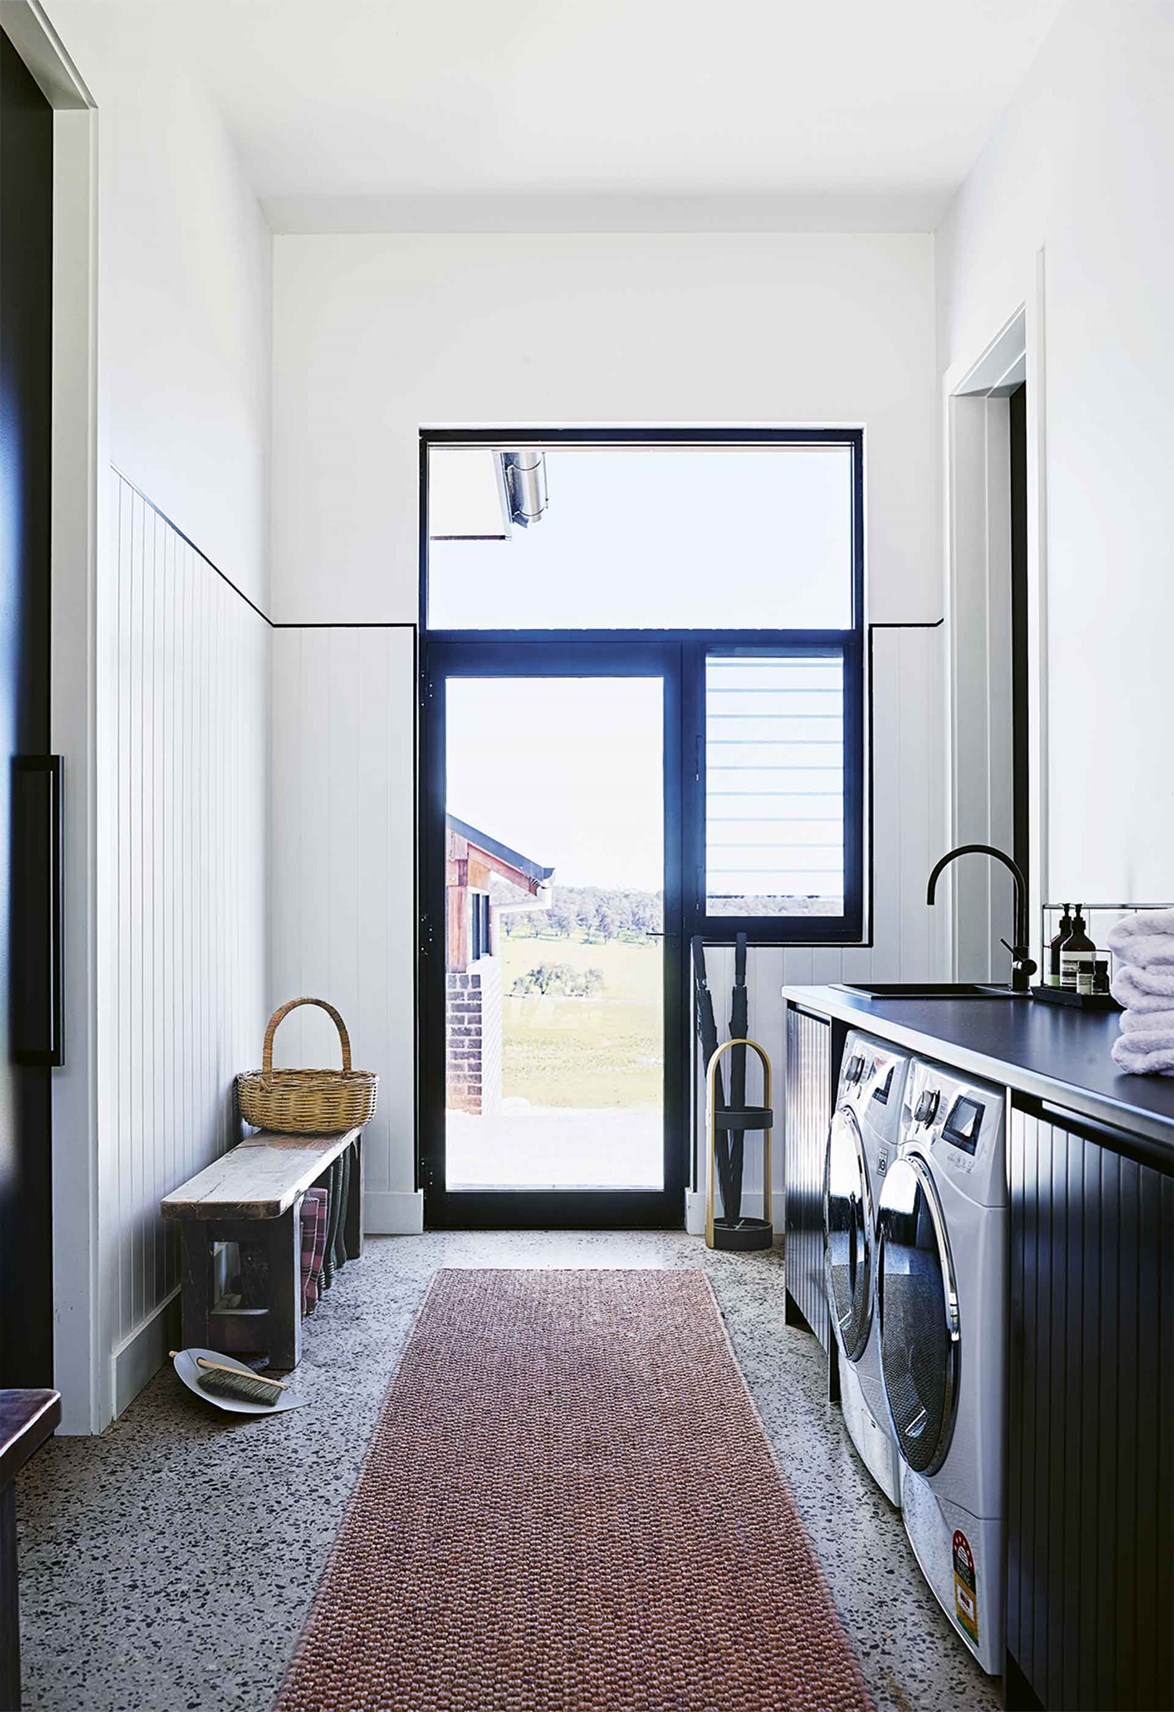 A modern farmhouse laundry with a washer and dryer positioned side-by-side.